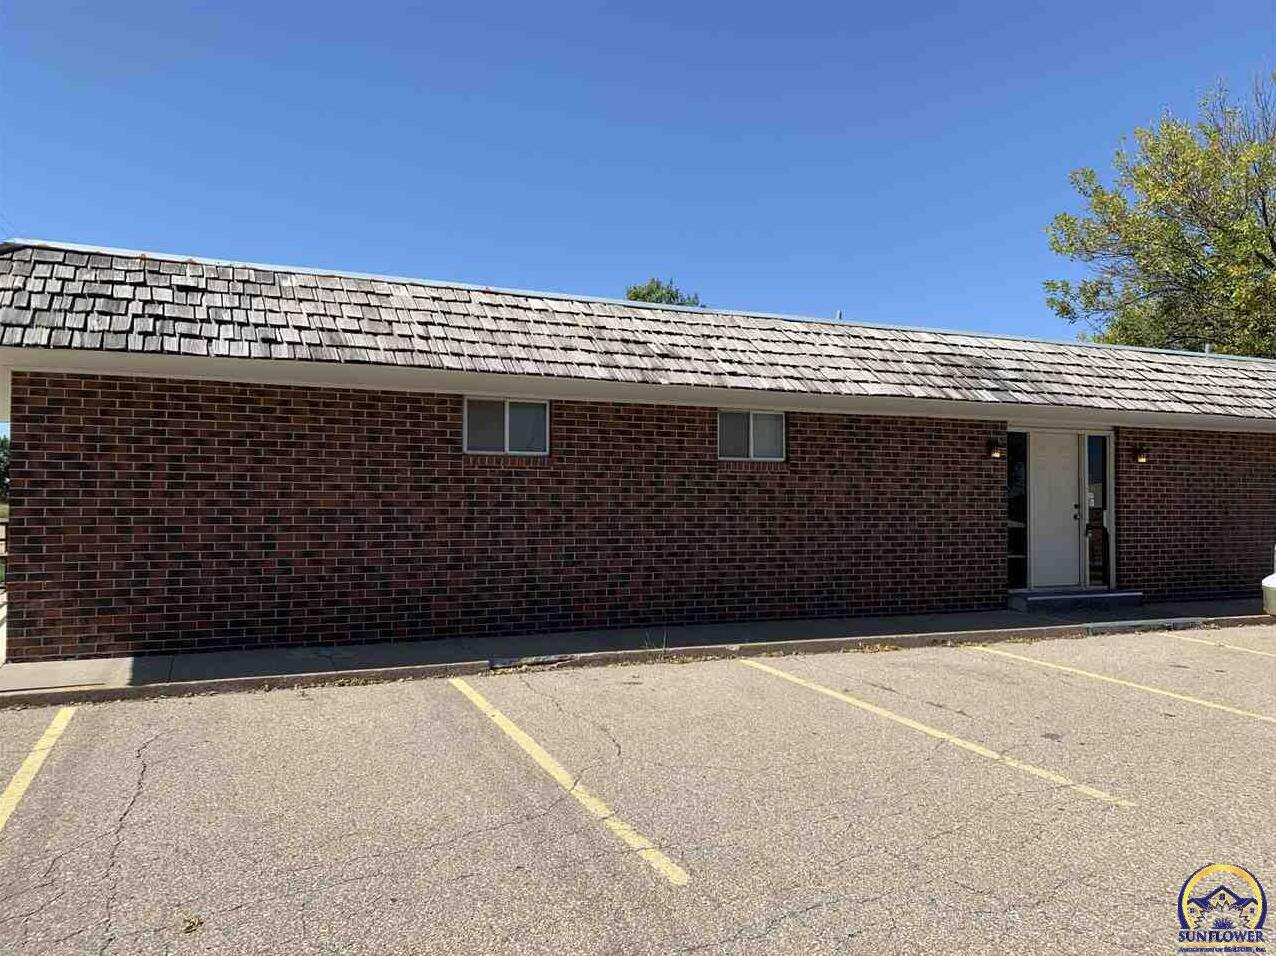 Photo of 5225 7th St Topeka KS 66606